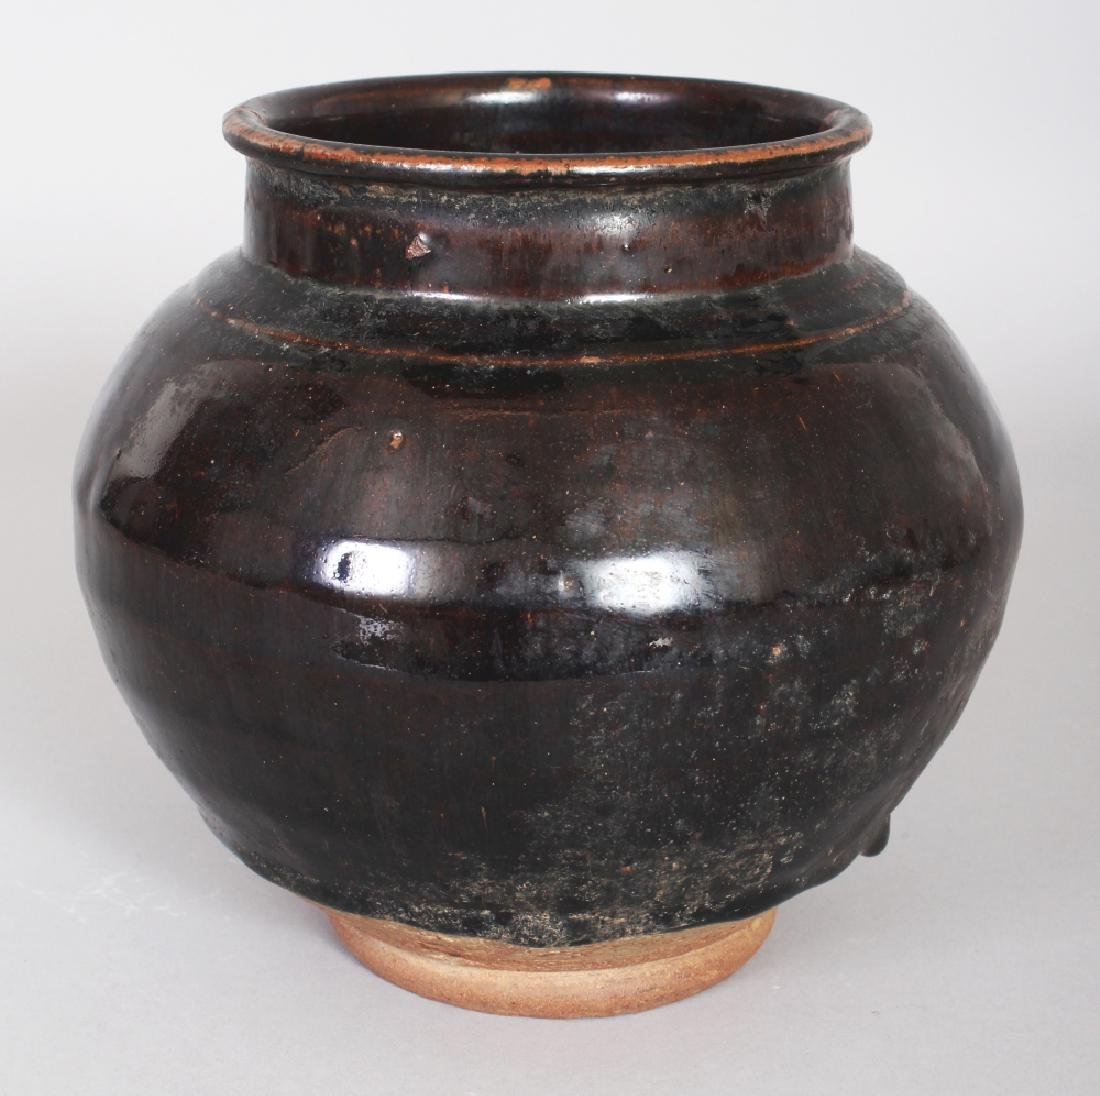 A CHINESE MING DYNASTY BROWN GLAZED STONEWARE STORAGE